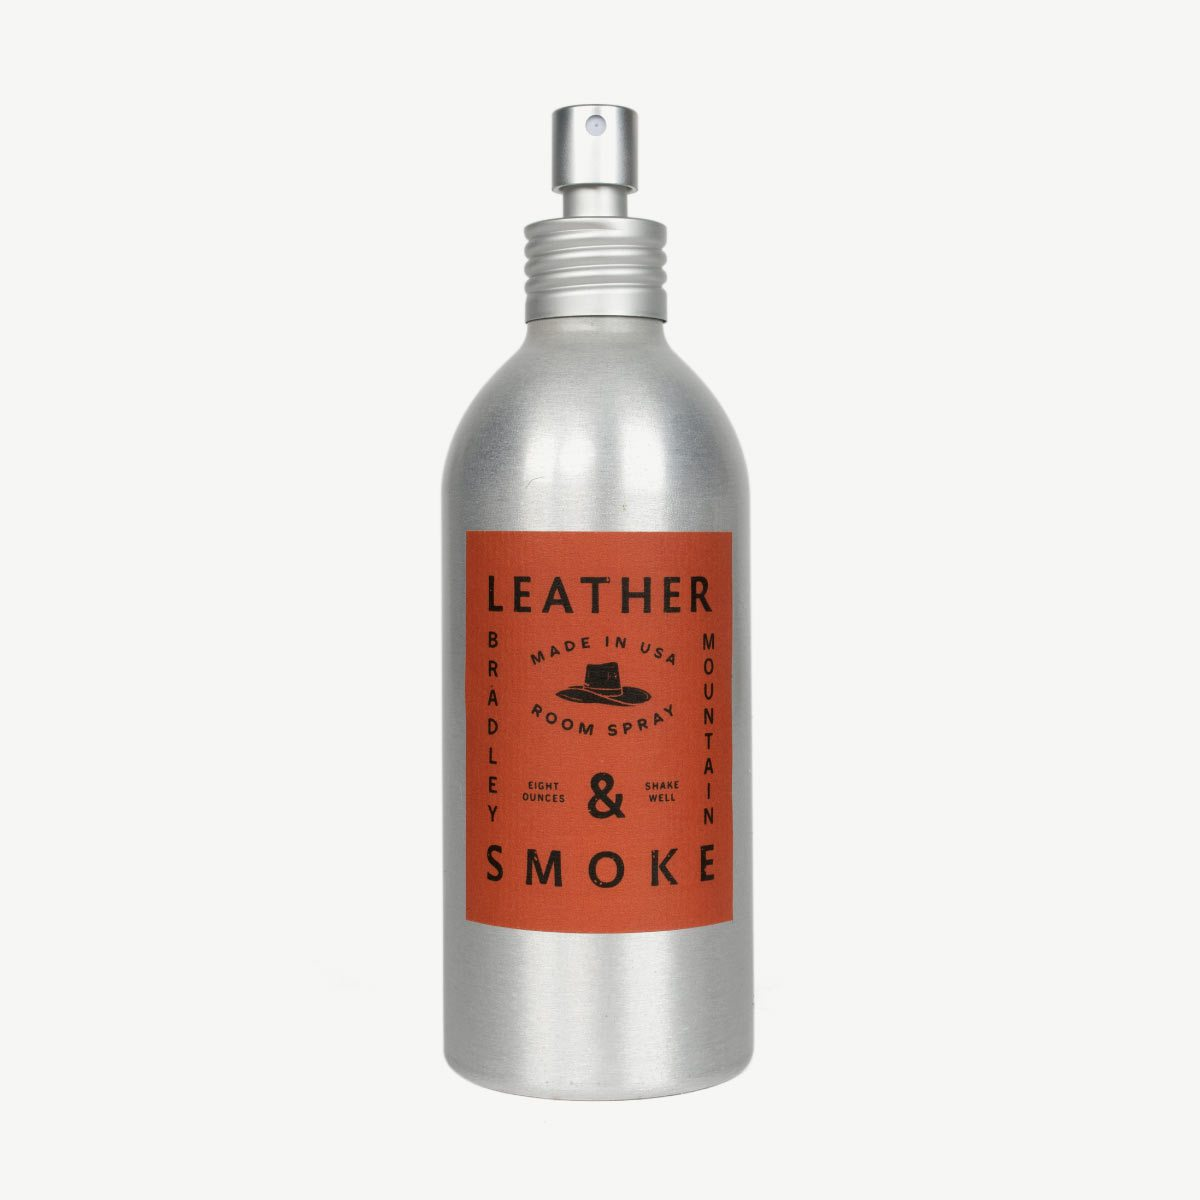 Leather & Smoke Room Spray